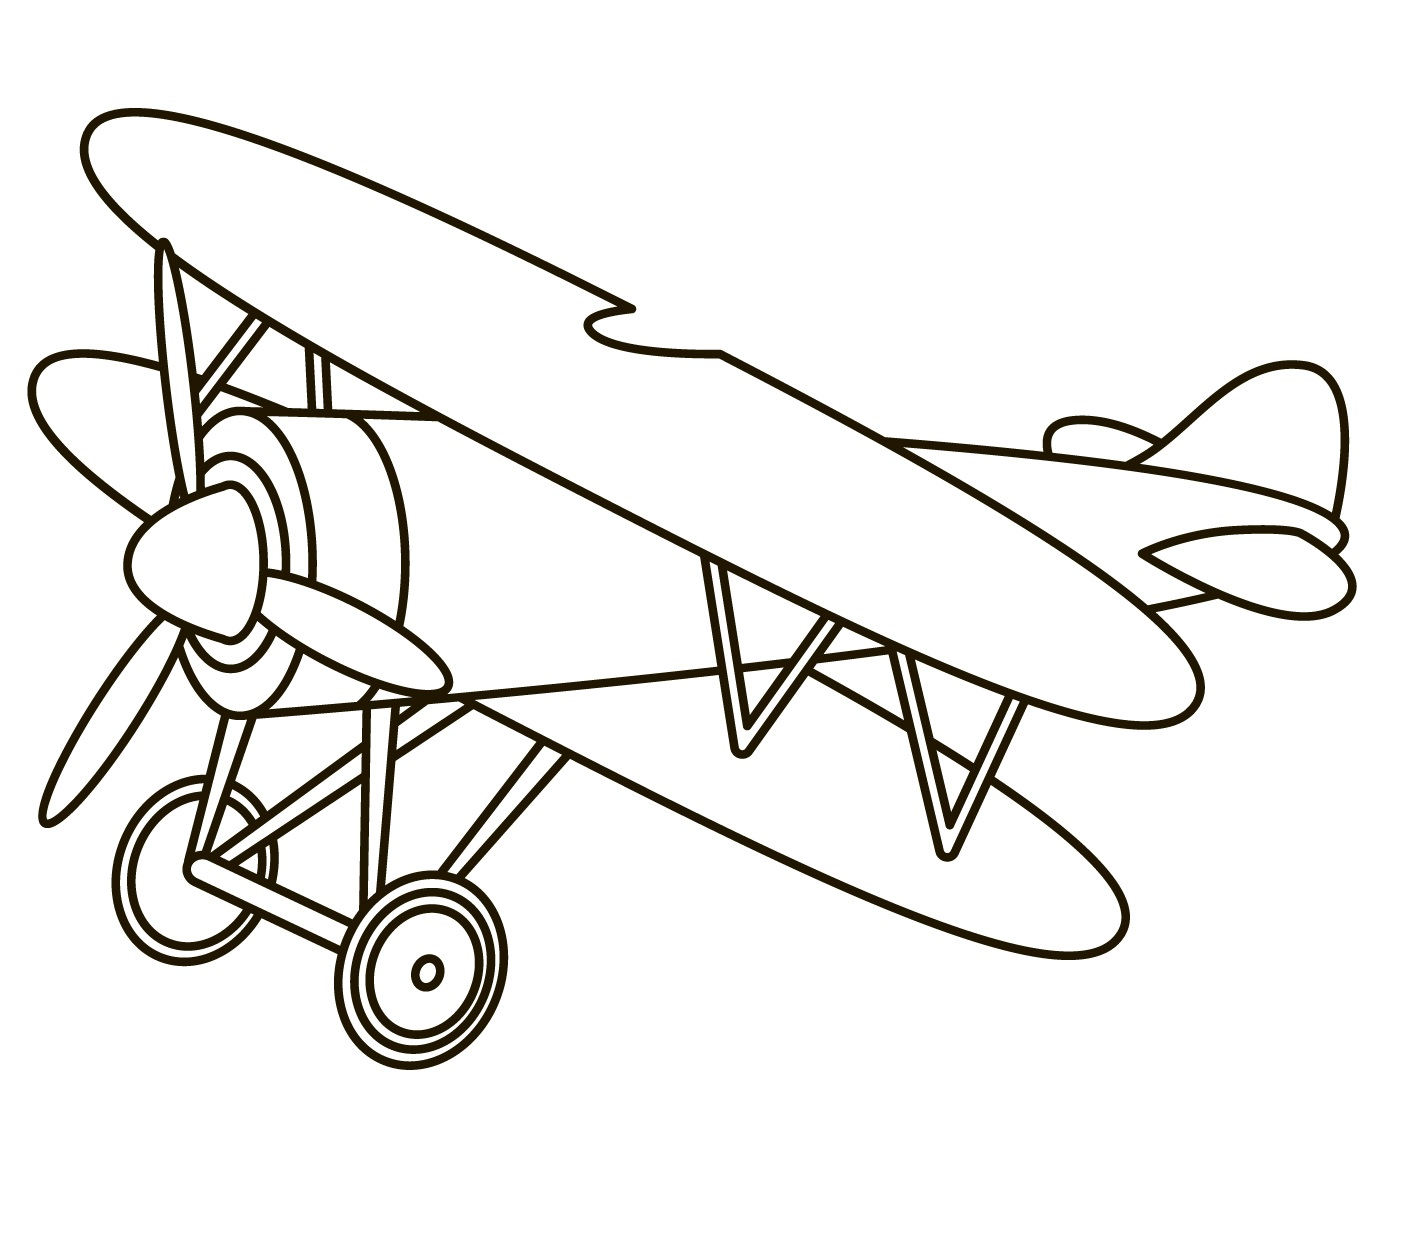 Toy airplane 3005